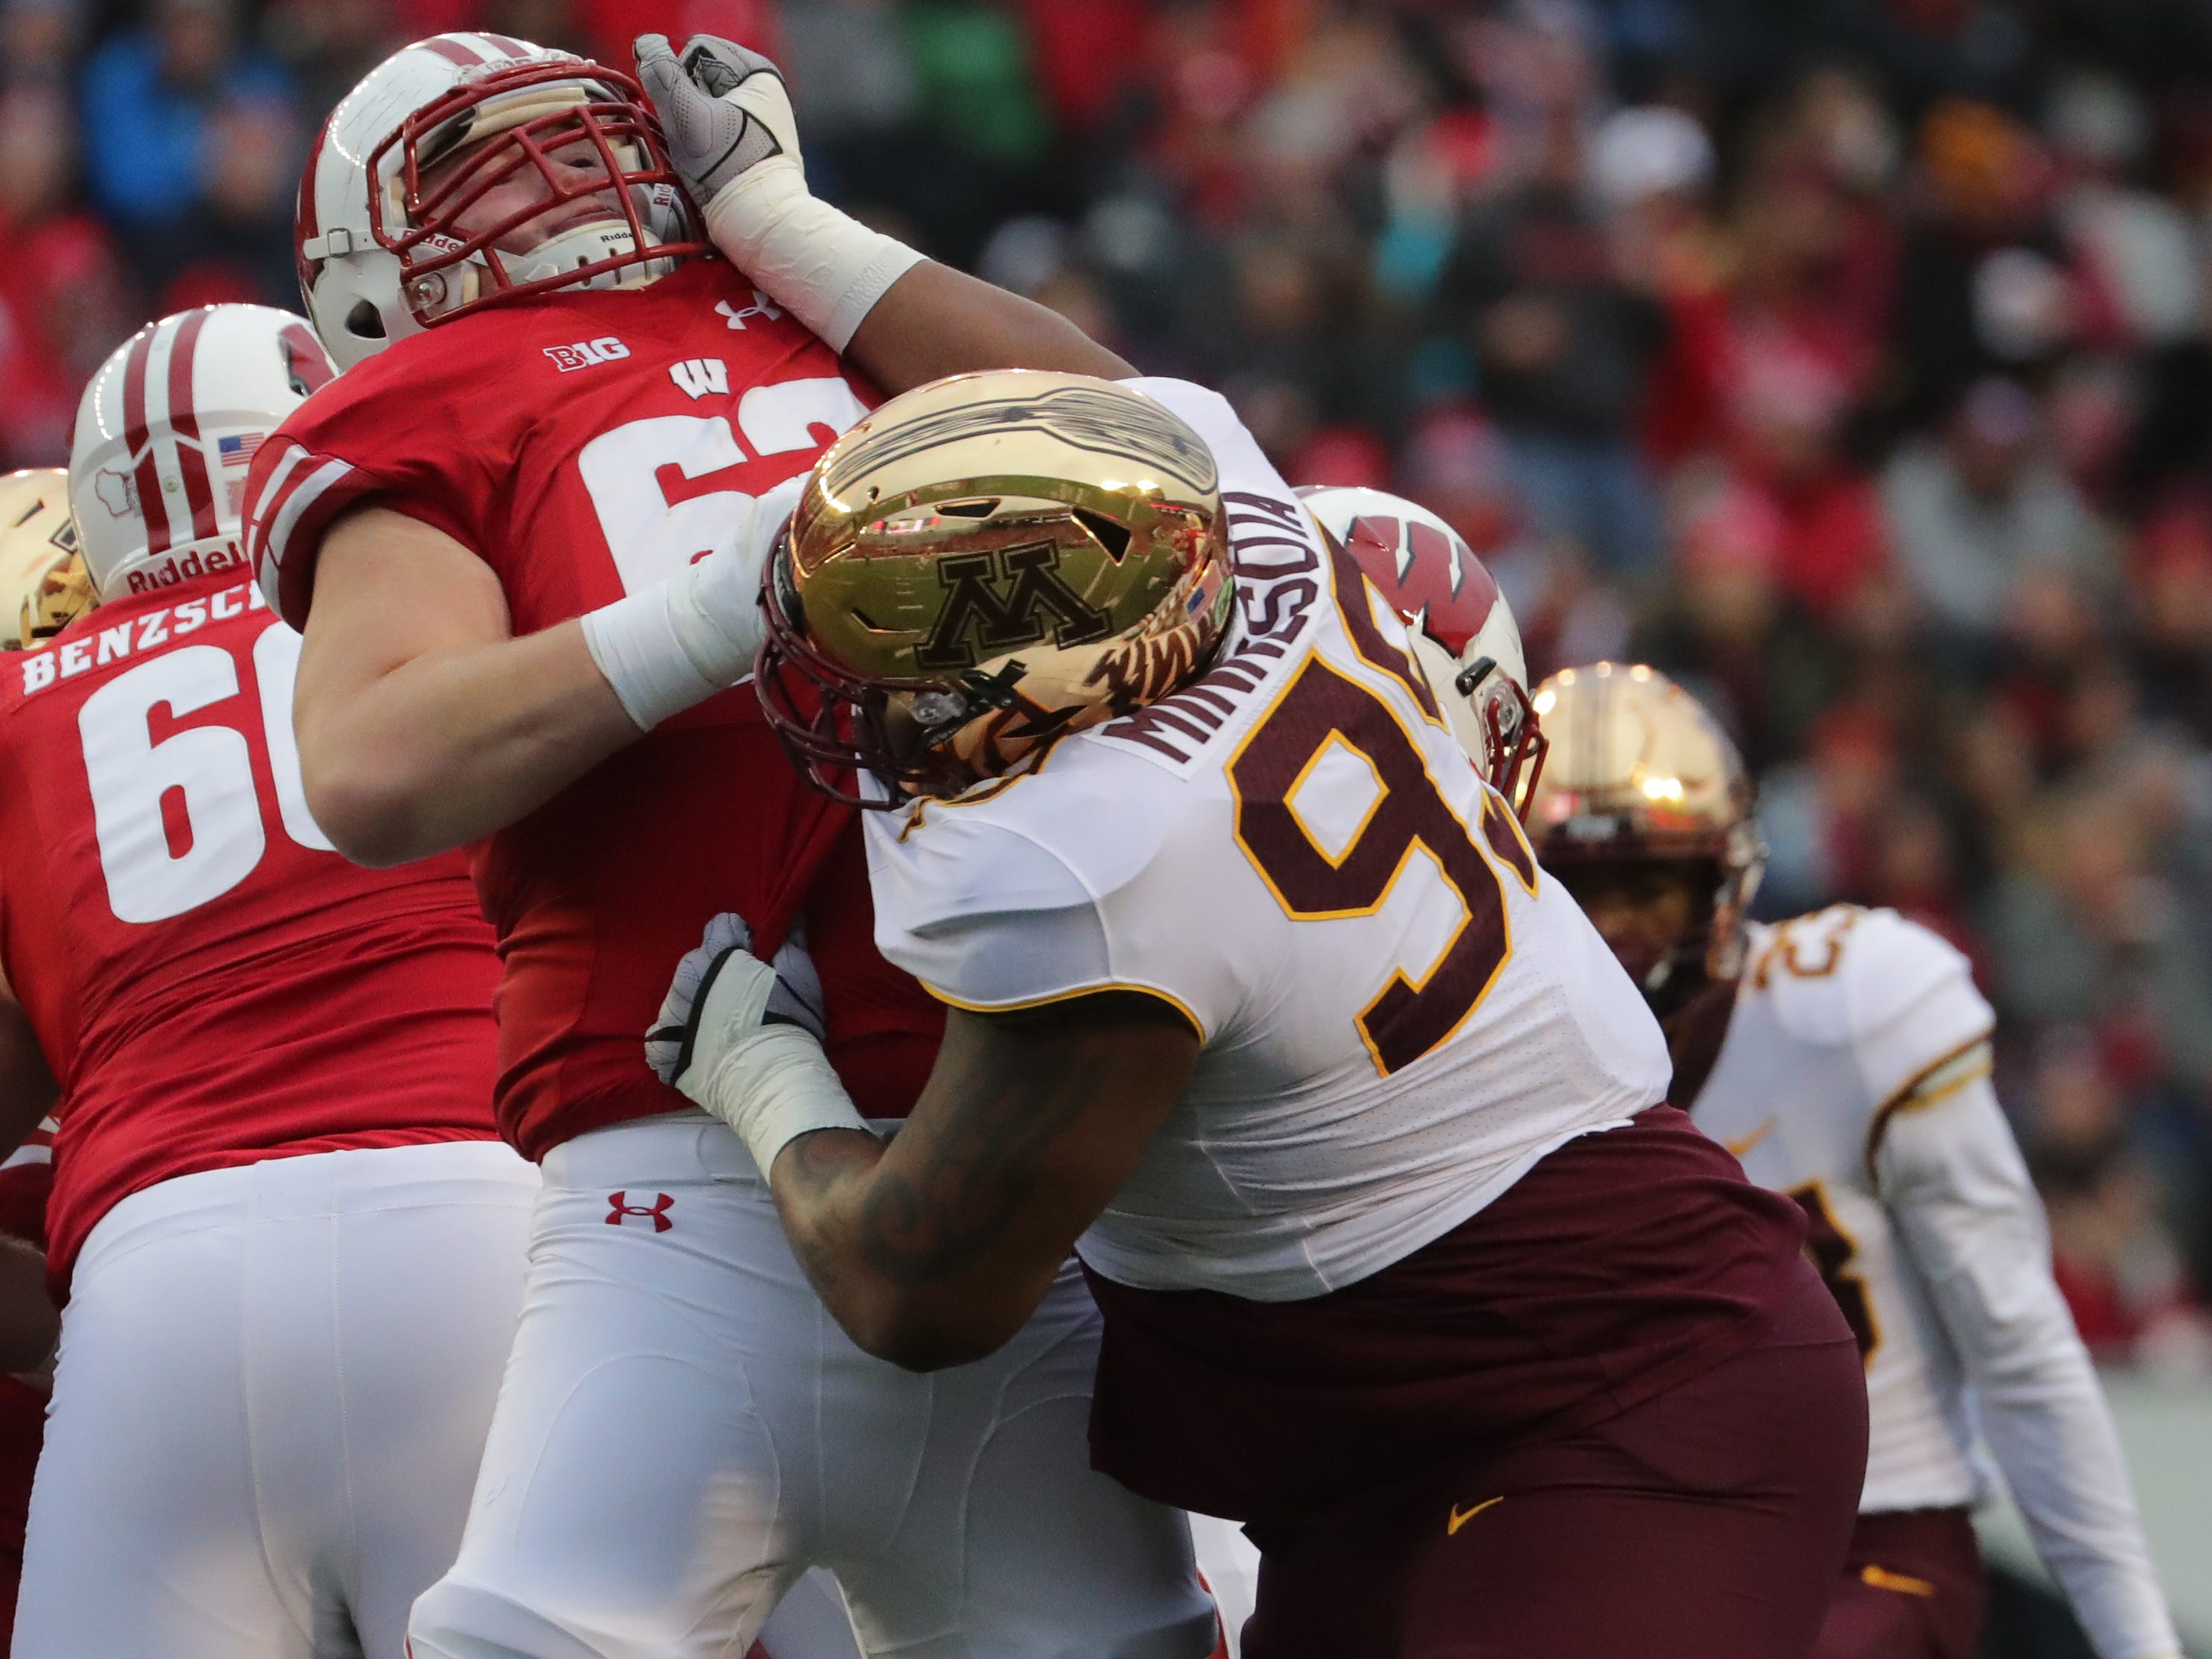 Wisconsin offensive lineman Michael Deiter duels with Minnesota defensive lineman O.J. Smith during the second quarter Saturday.